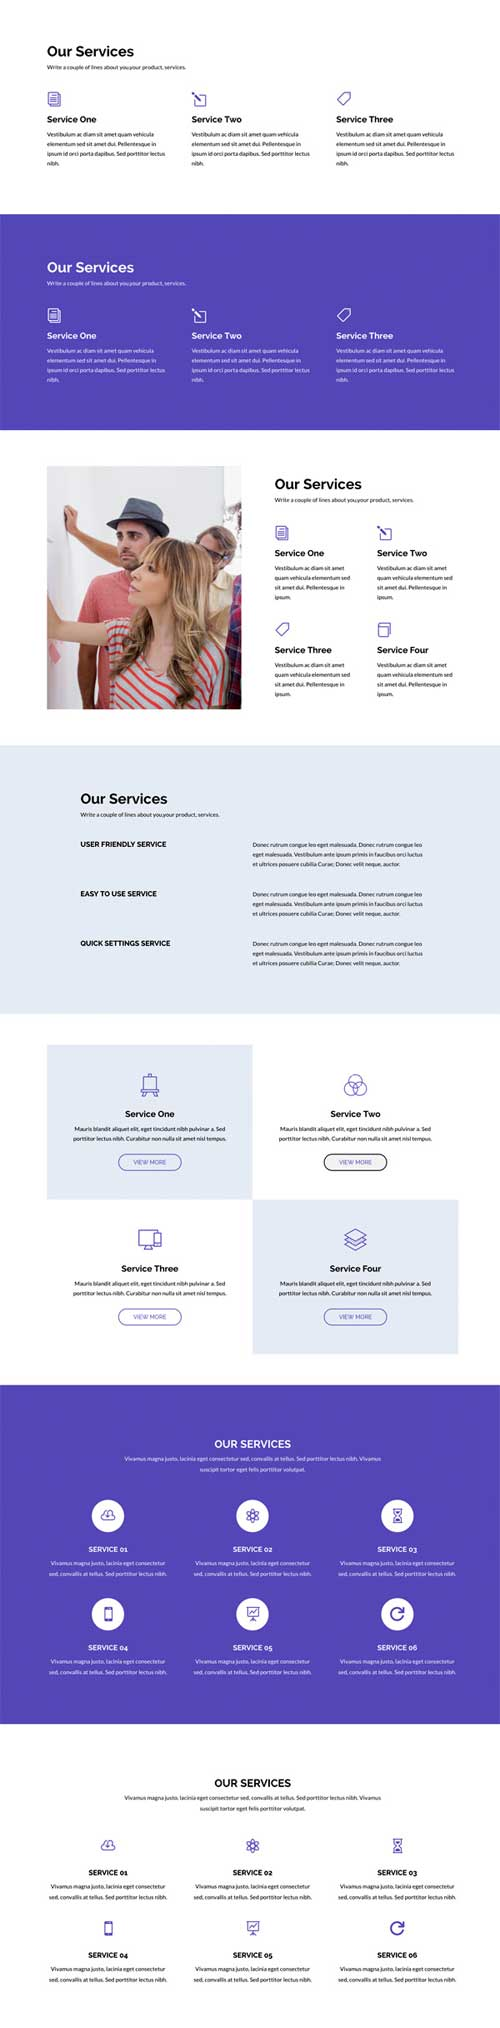 Divi layout for our services